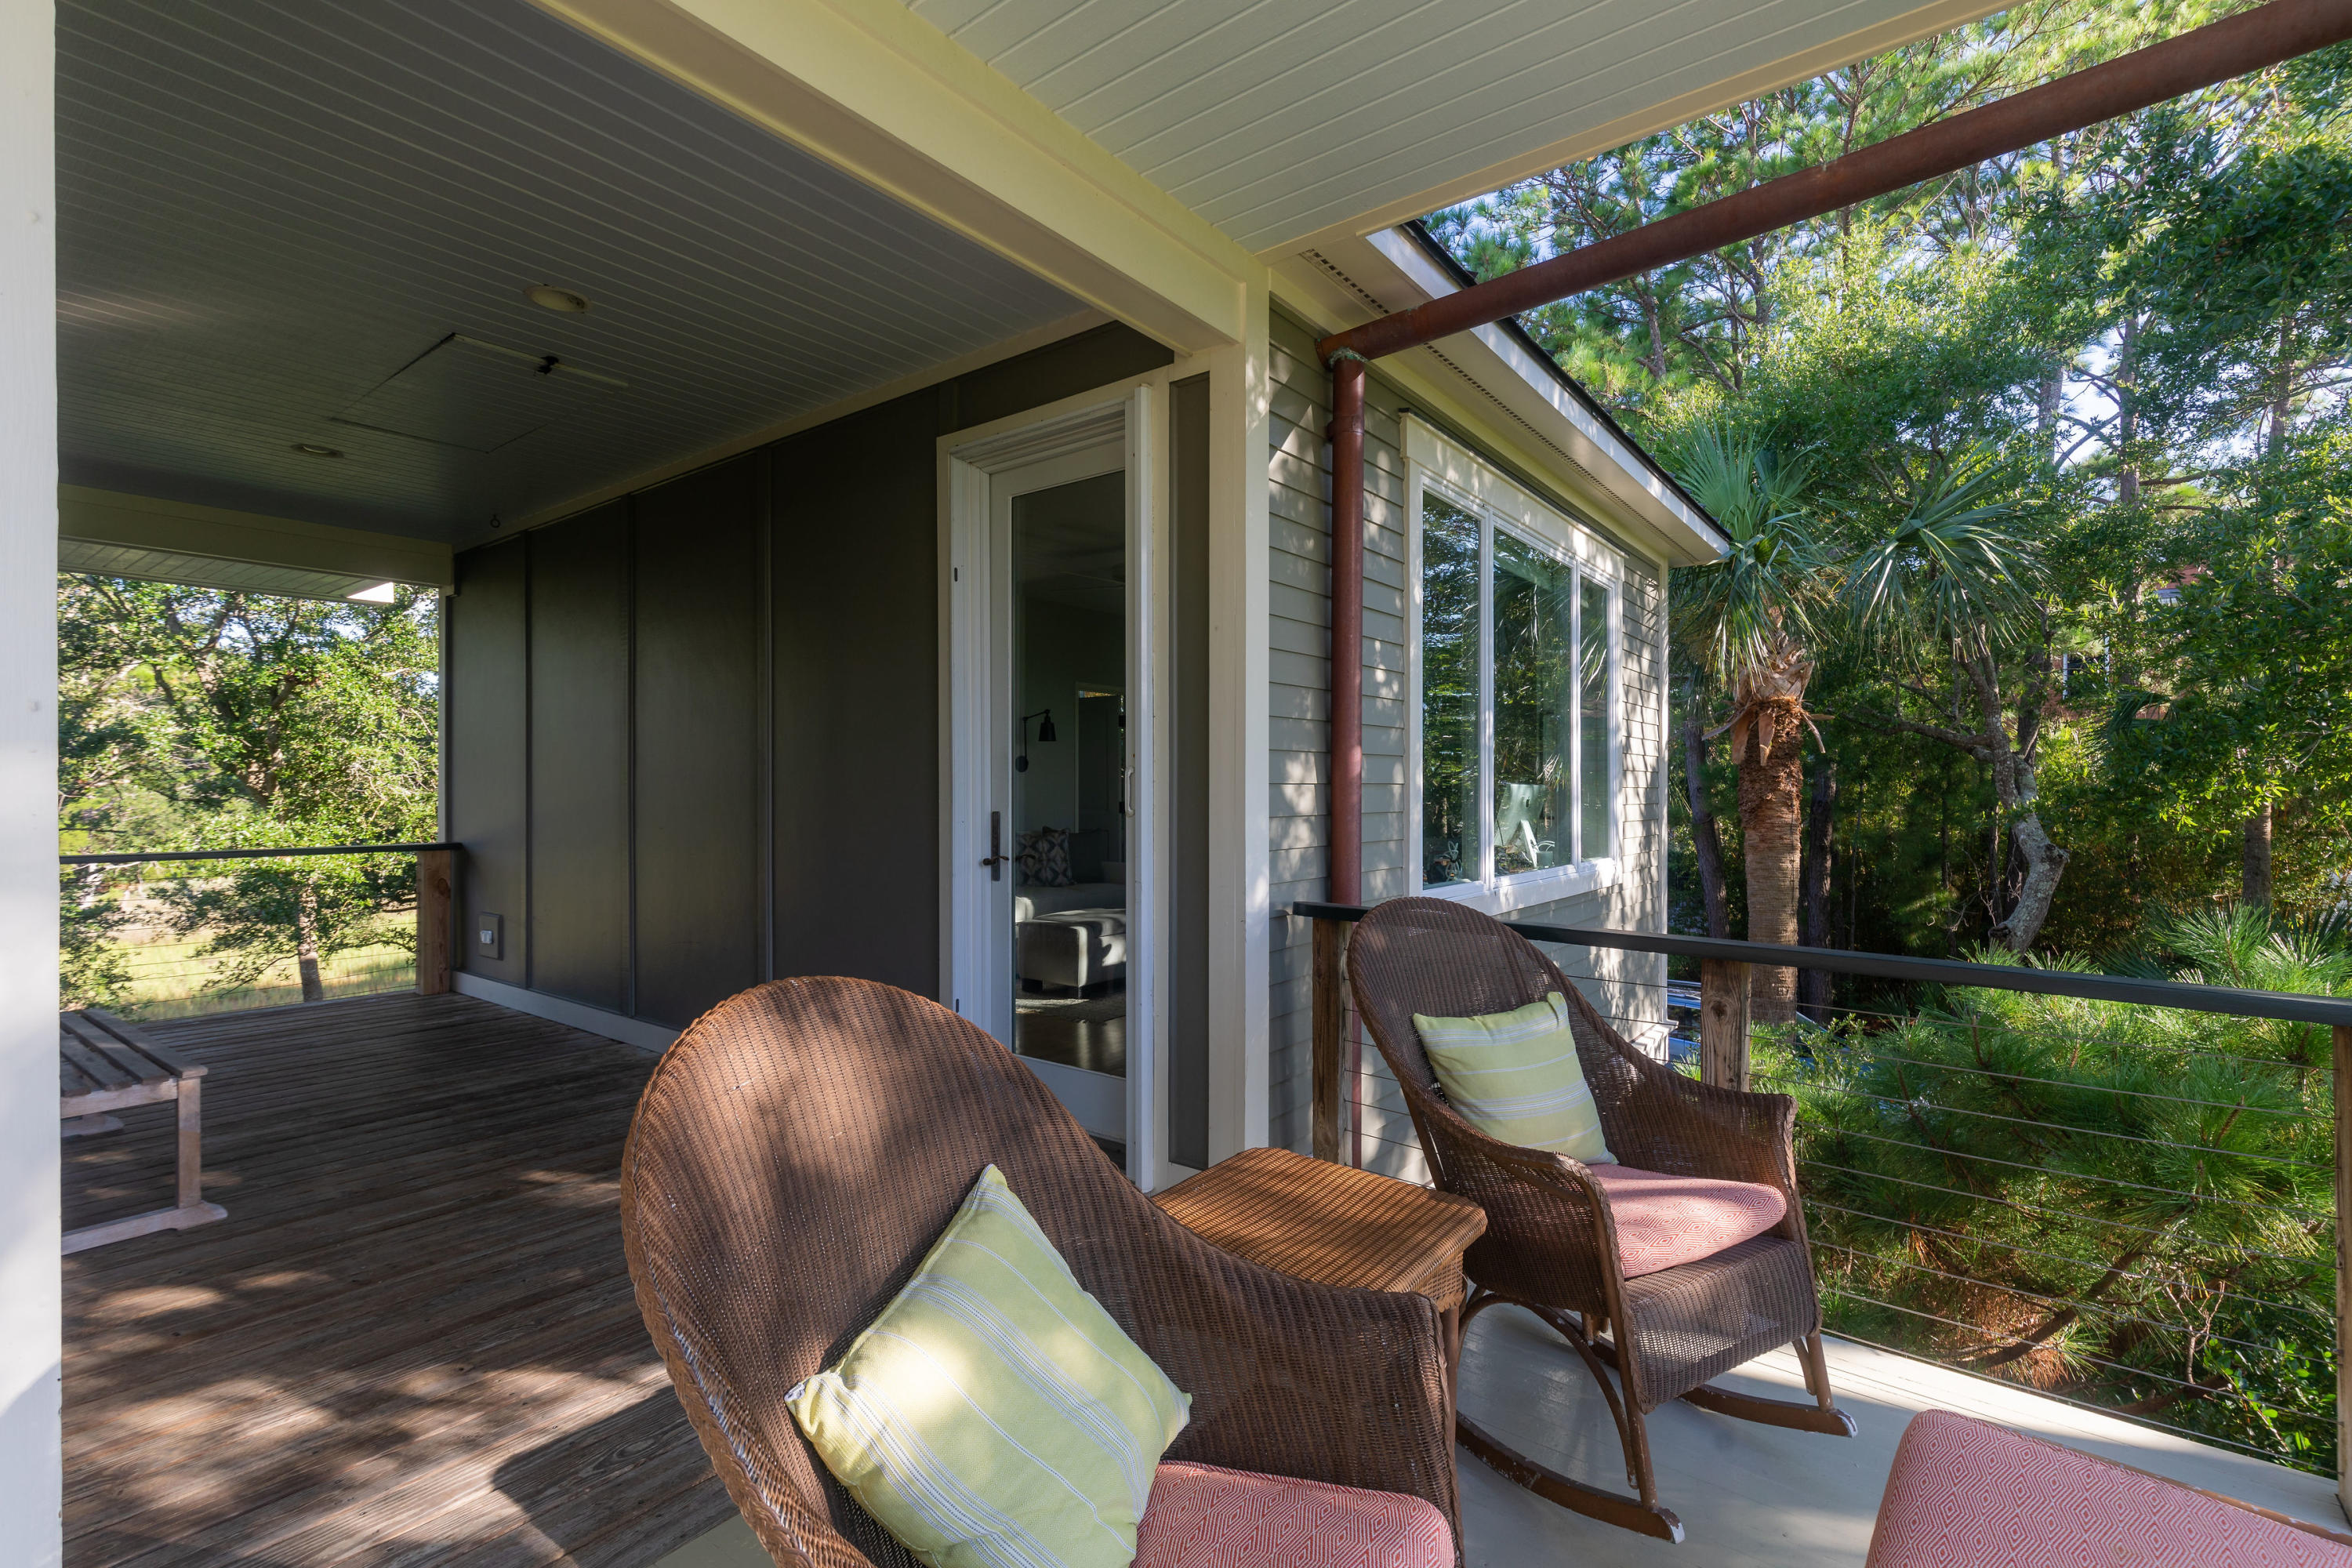 Wild Dunes Homes For Sale - 16 Seagrass, Isle of Palms, SC - 7